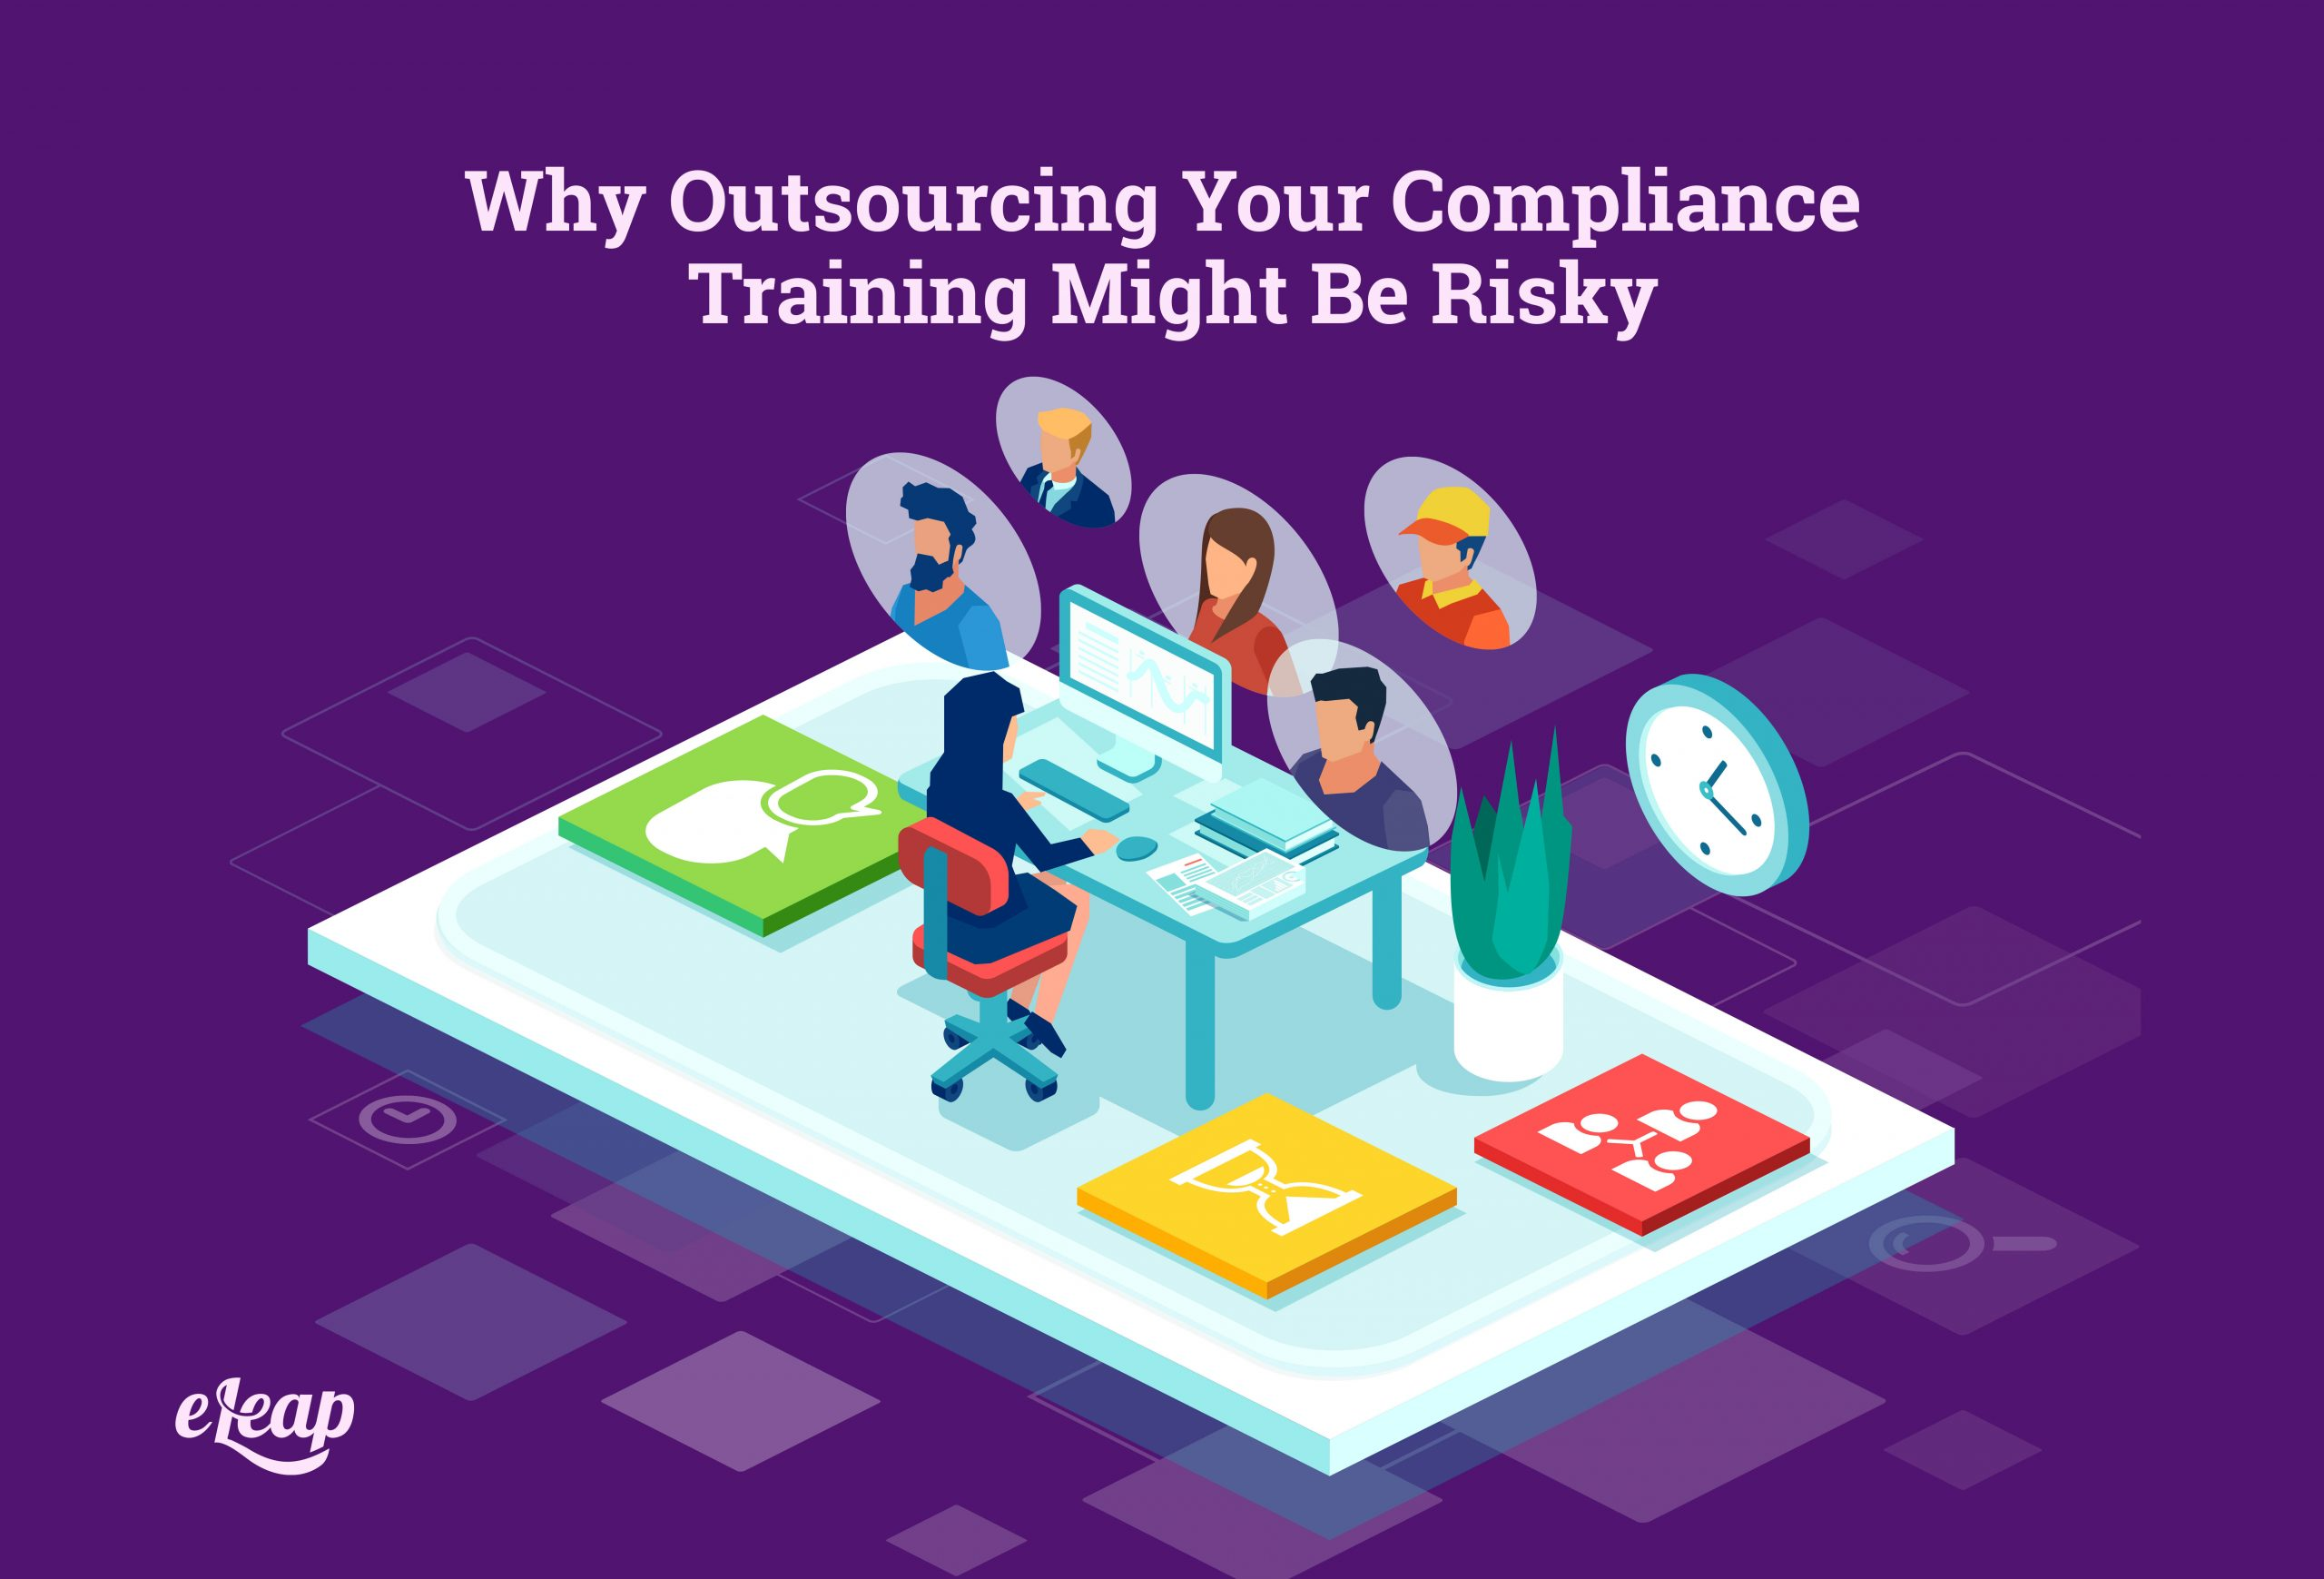 Why Outsourcing Your Compliance Training Might Be Risky